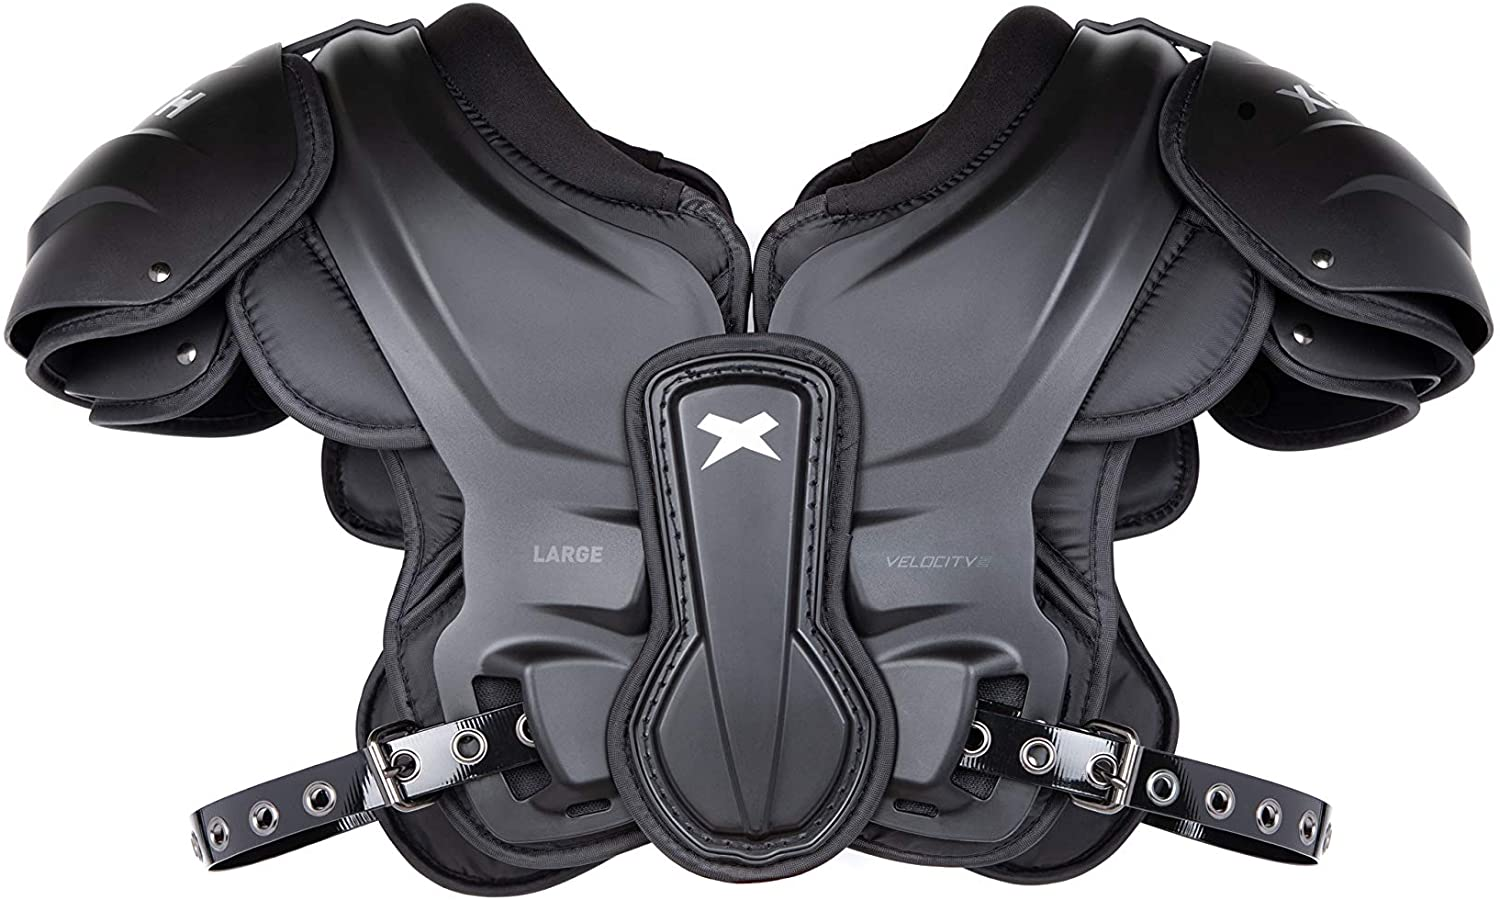 Xenith Velocity Varsity Football Shoulder Pads for Adults - All Purpose Protective Gear : Sports & Outdoors